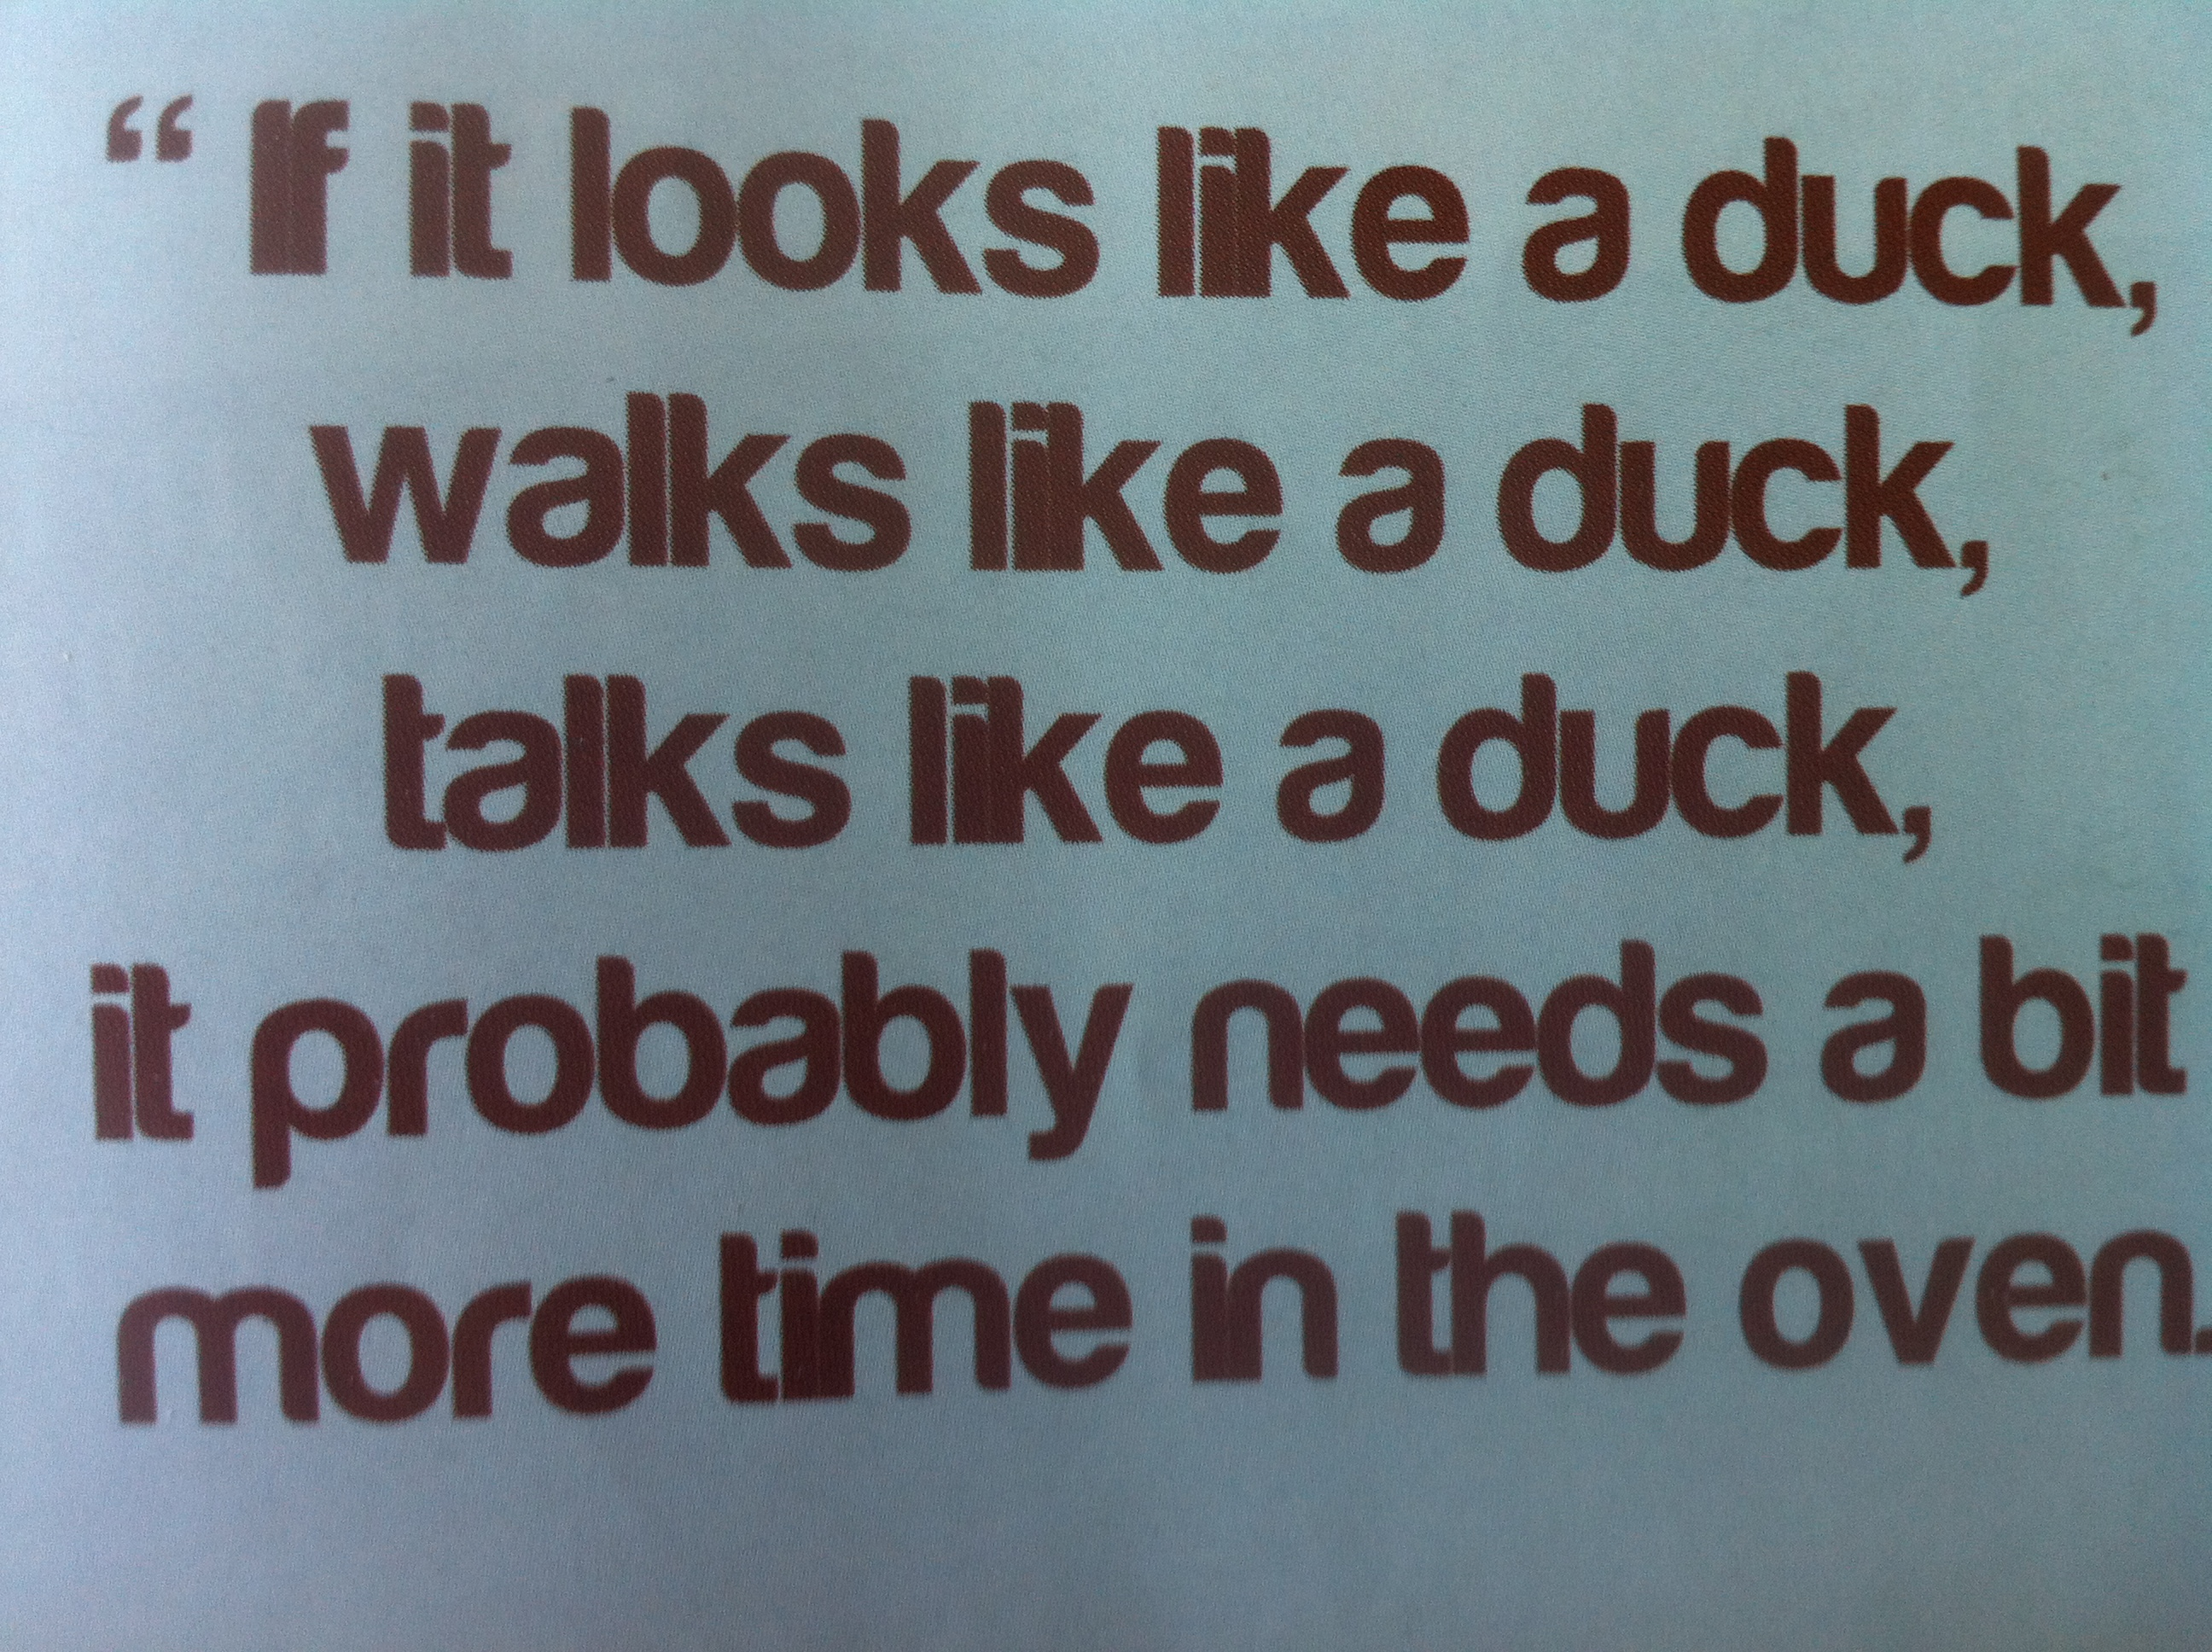 If it looks like a duck, talks like a duck